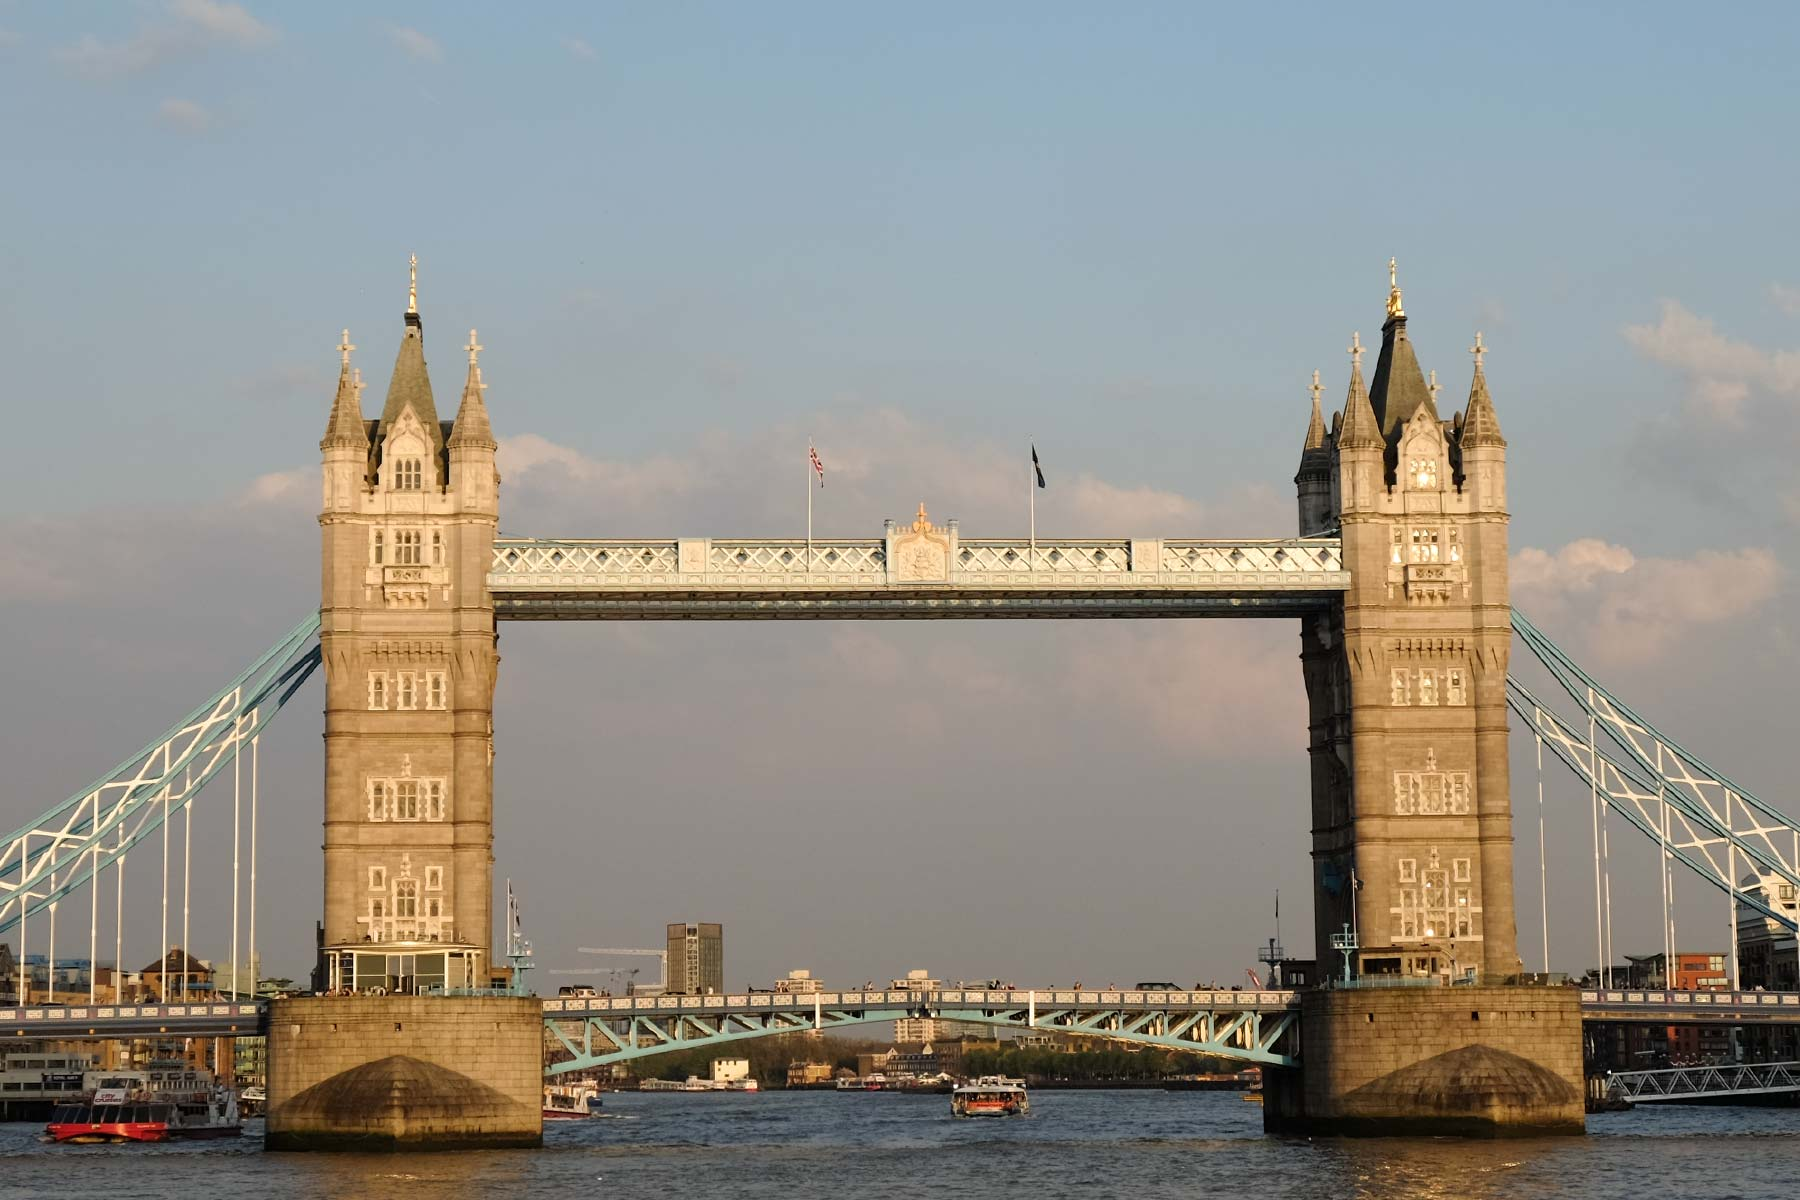 Tower Bridge bei Sonnenuntergang in London, England